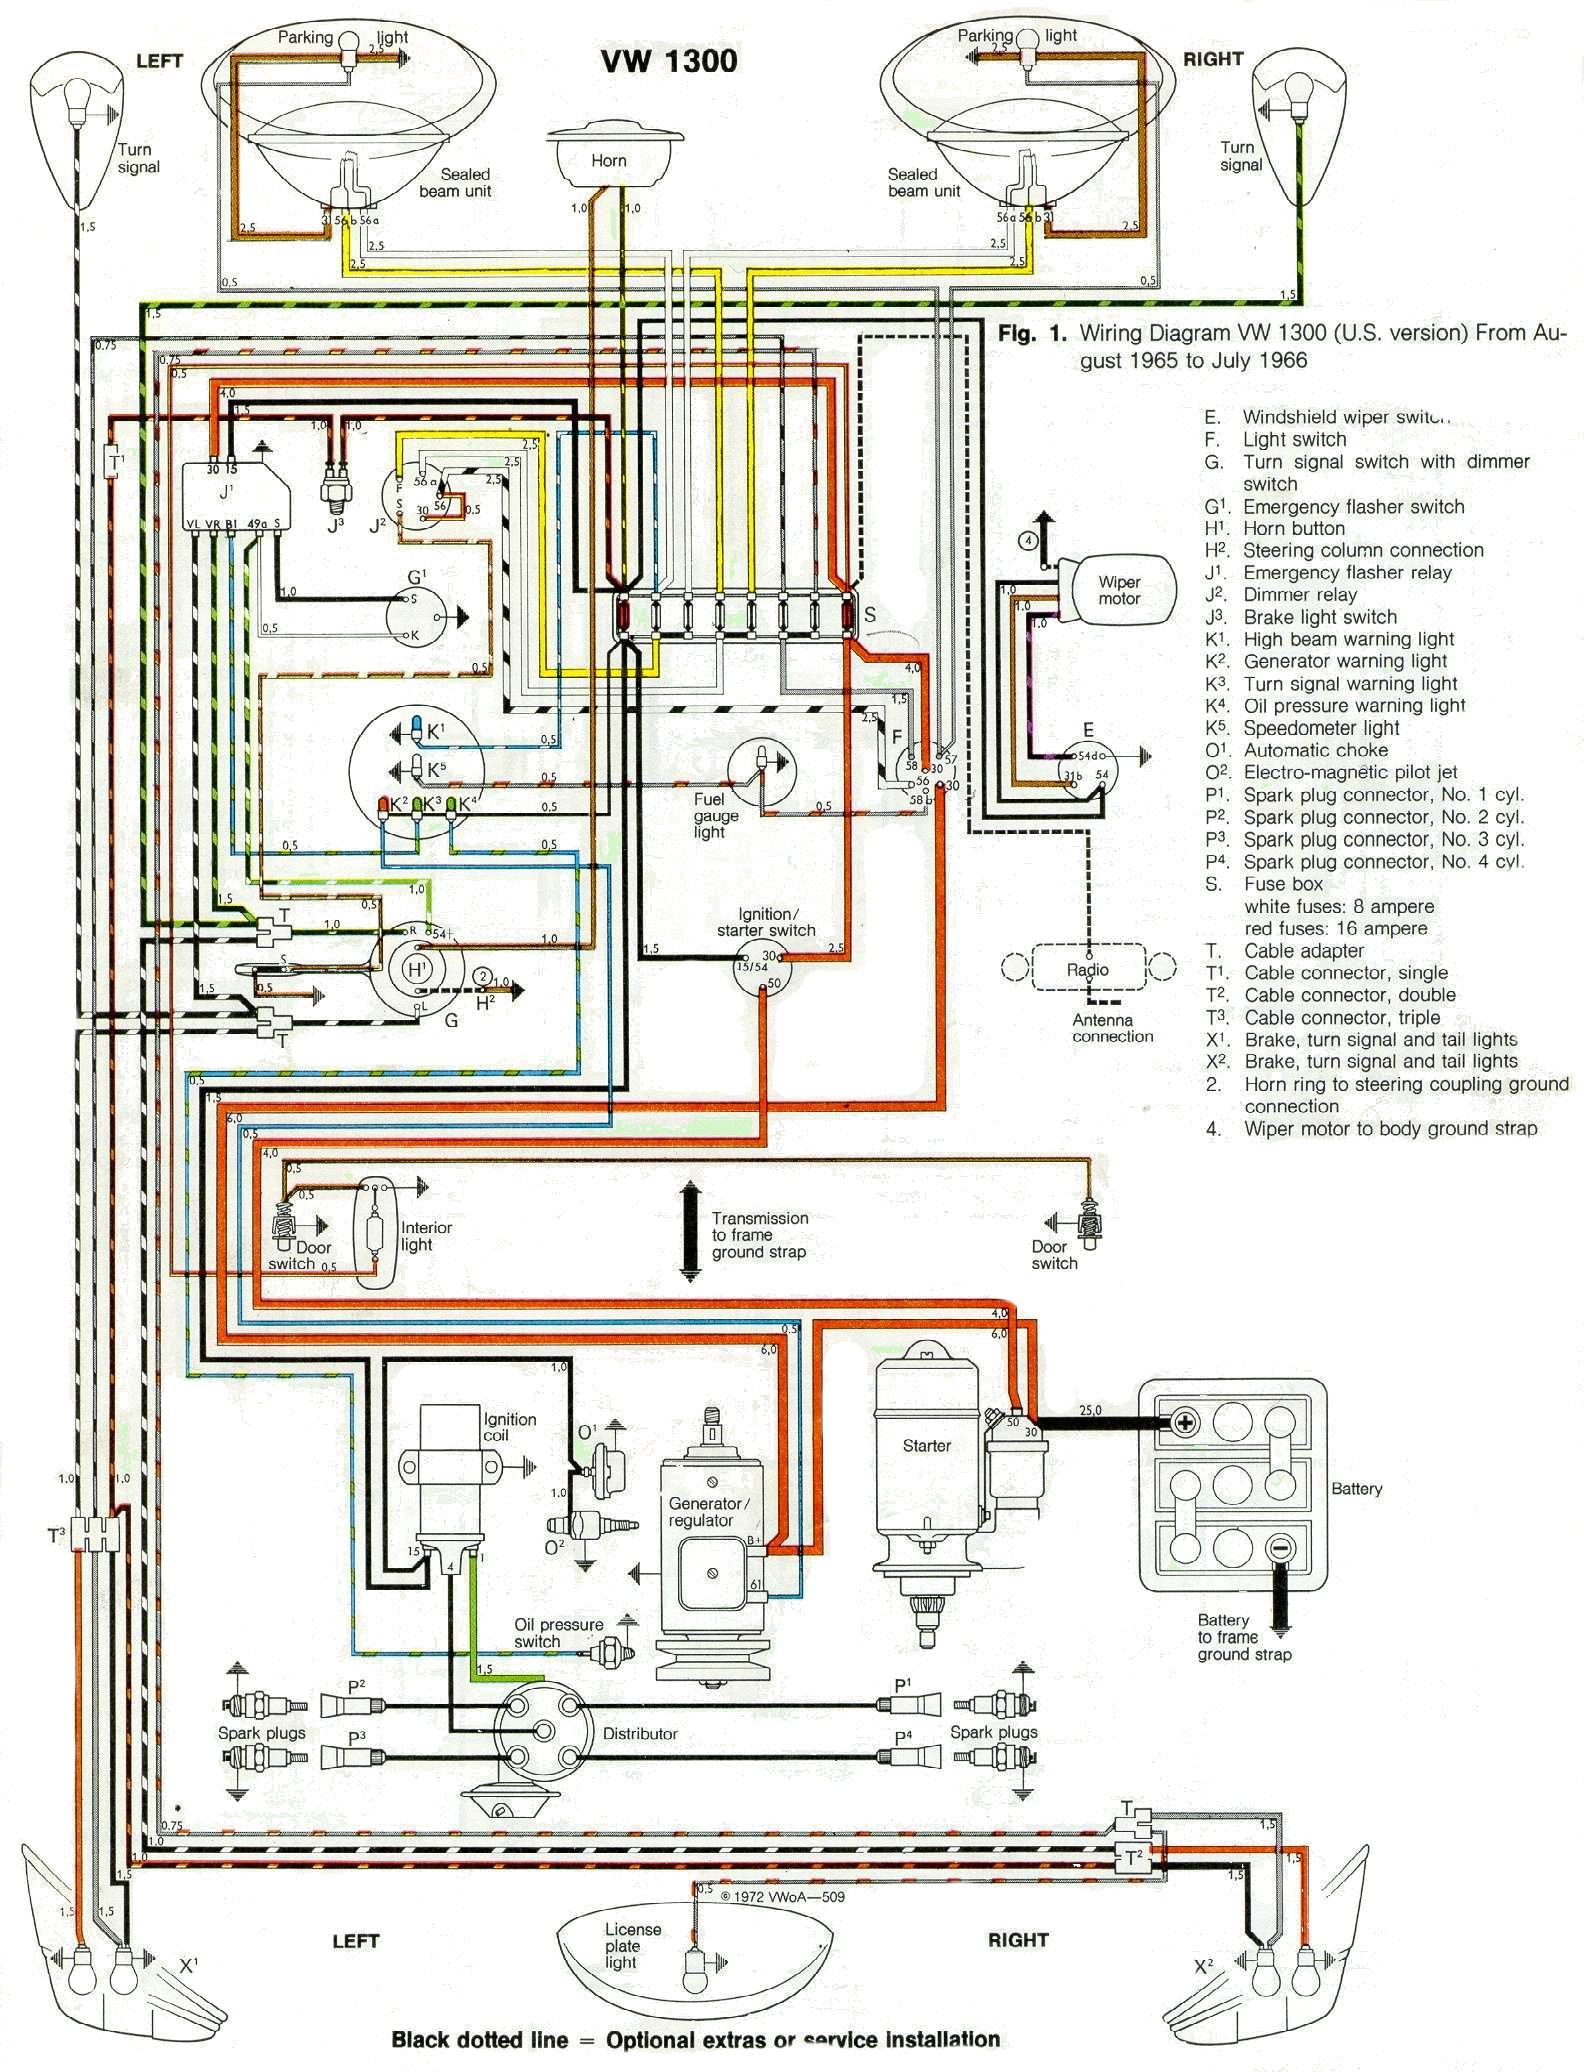 hight resolution of 66 vw wiring diagram wiring diagrams rh casamario de 1967 volkswagen beetle wiring diagram 1967 volkswagen beetle wiring diagram